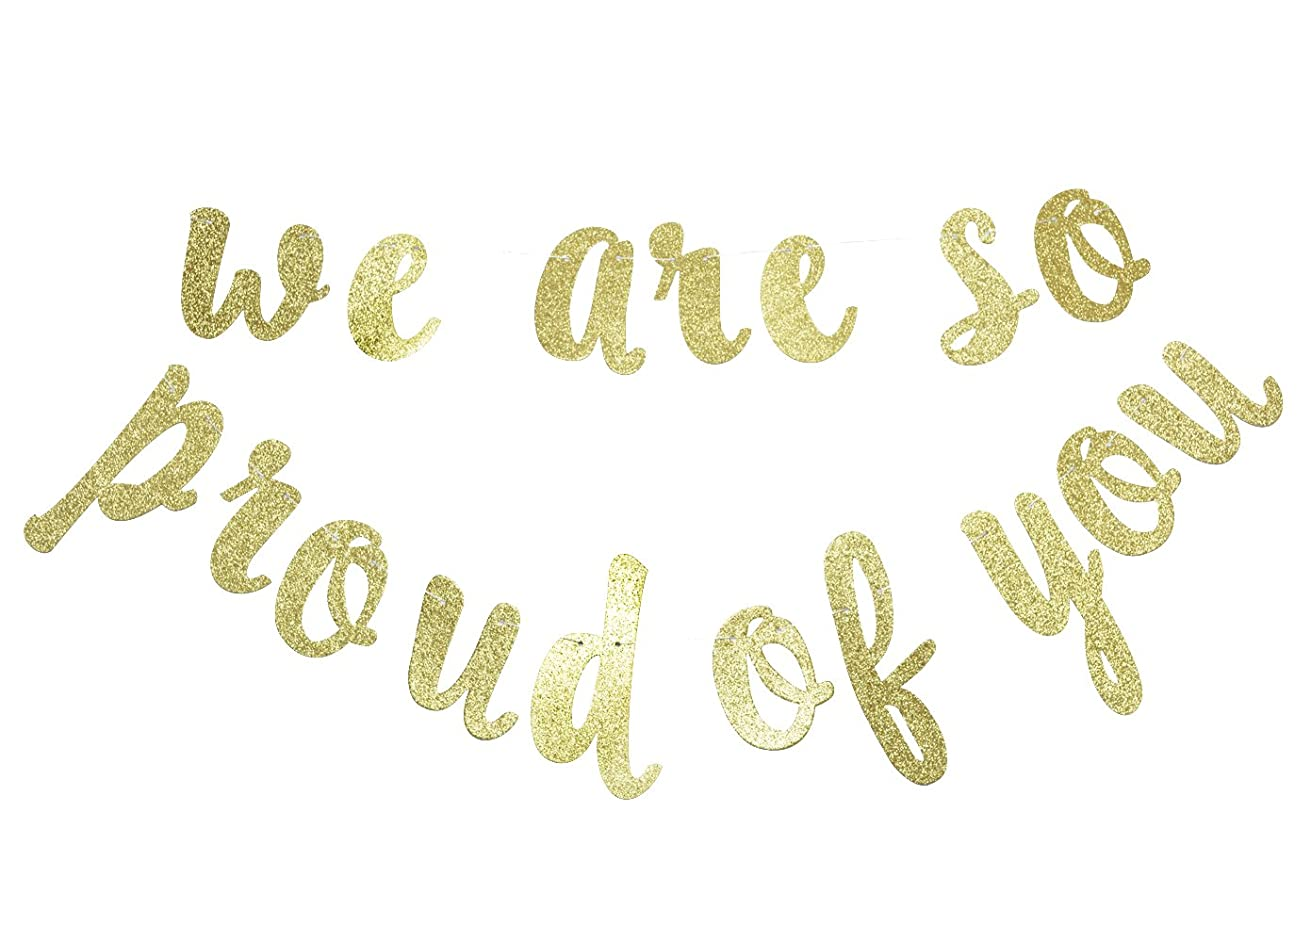 We are So Proud of You Gold Glitter Banner- Graduation Banner-Graduation/Grad Party Decorations